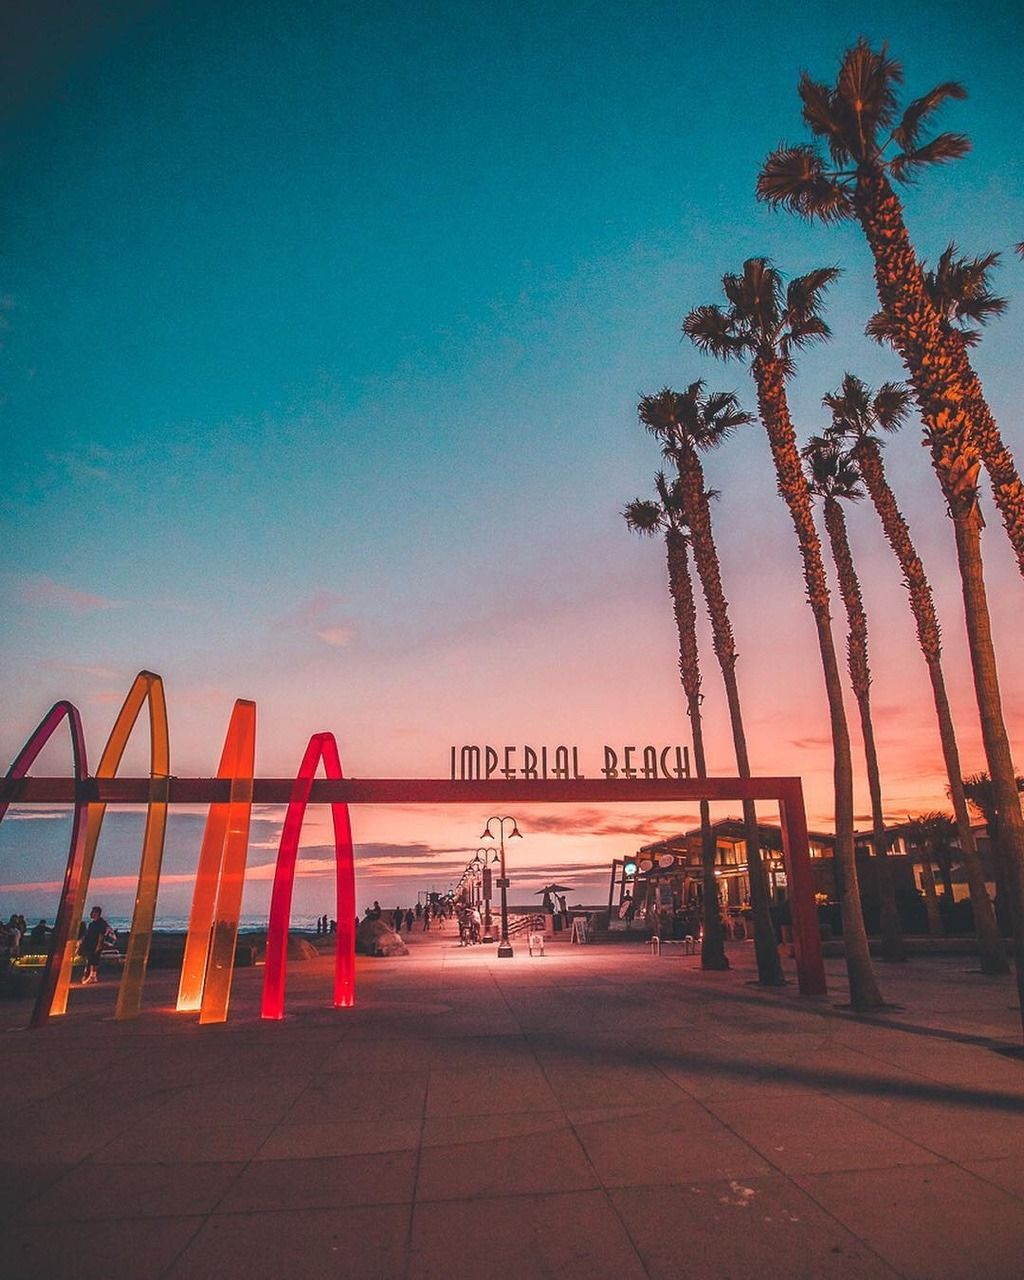 Imperial beach by eric scire